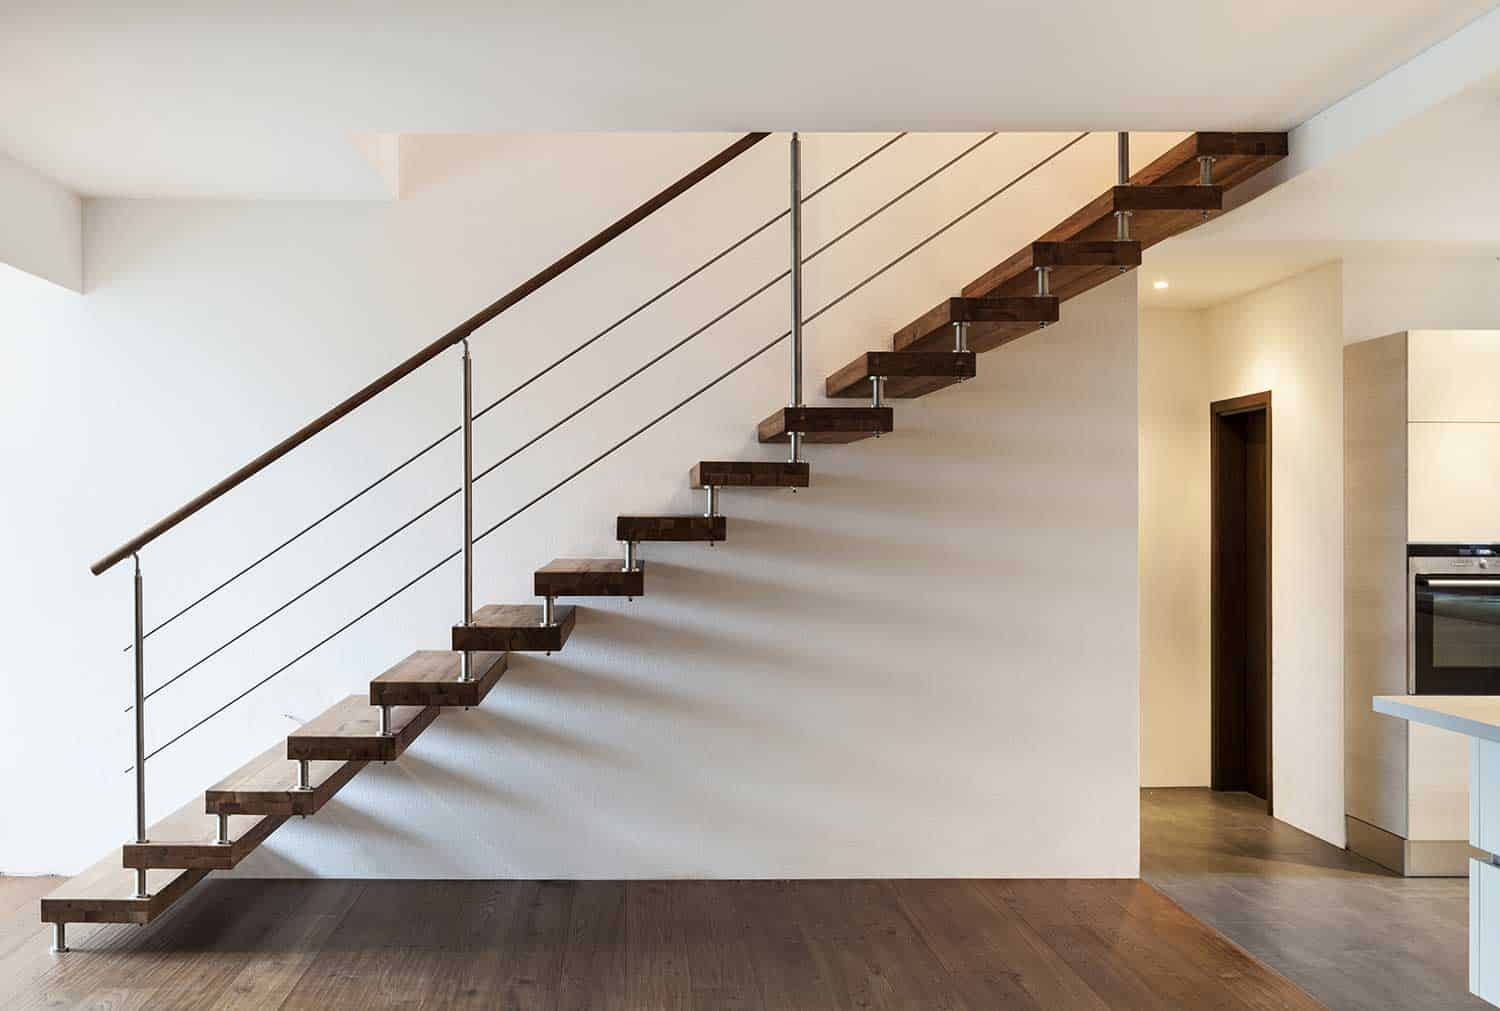 Open riser stairs in a loft interior